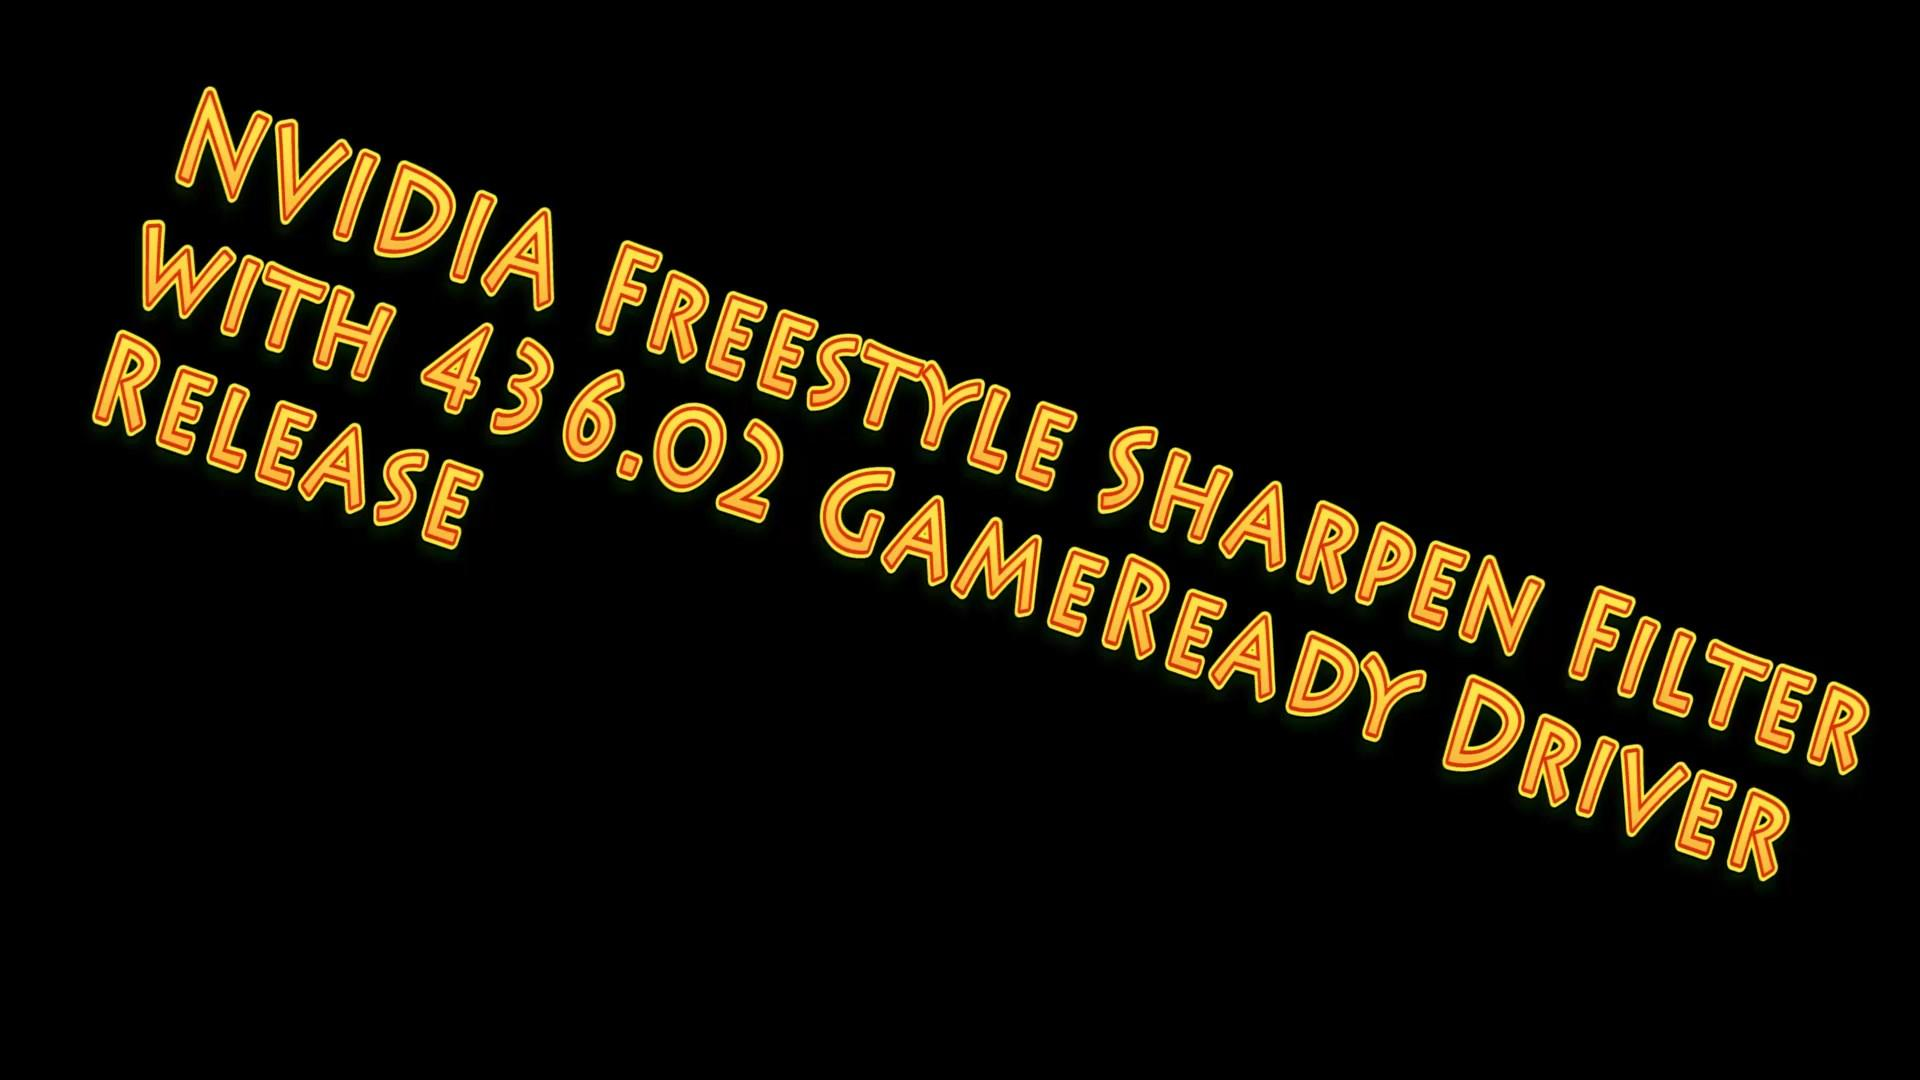 Nvidia 436 02 Game Ready Driver Freestyle Sharpen Filter New Vs Amd Ris Cas Video Comparison Nvidia Gpu Driver Releases Tech Inferno Forums